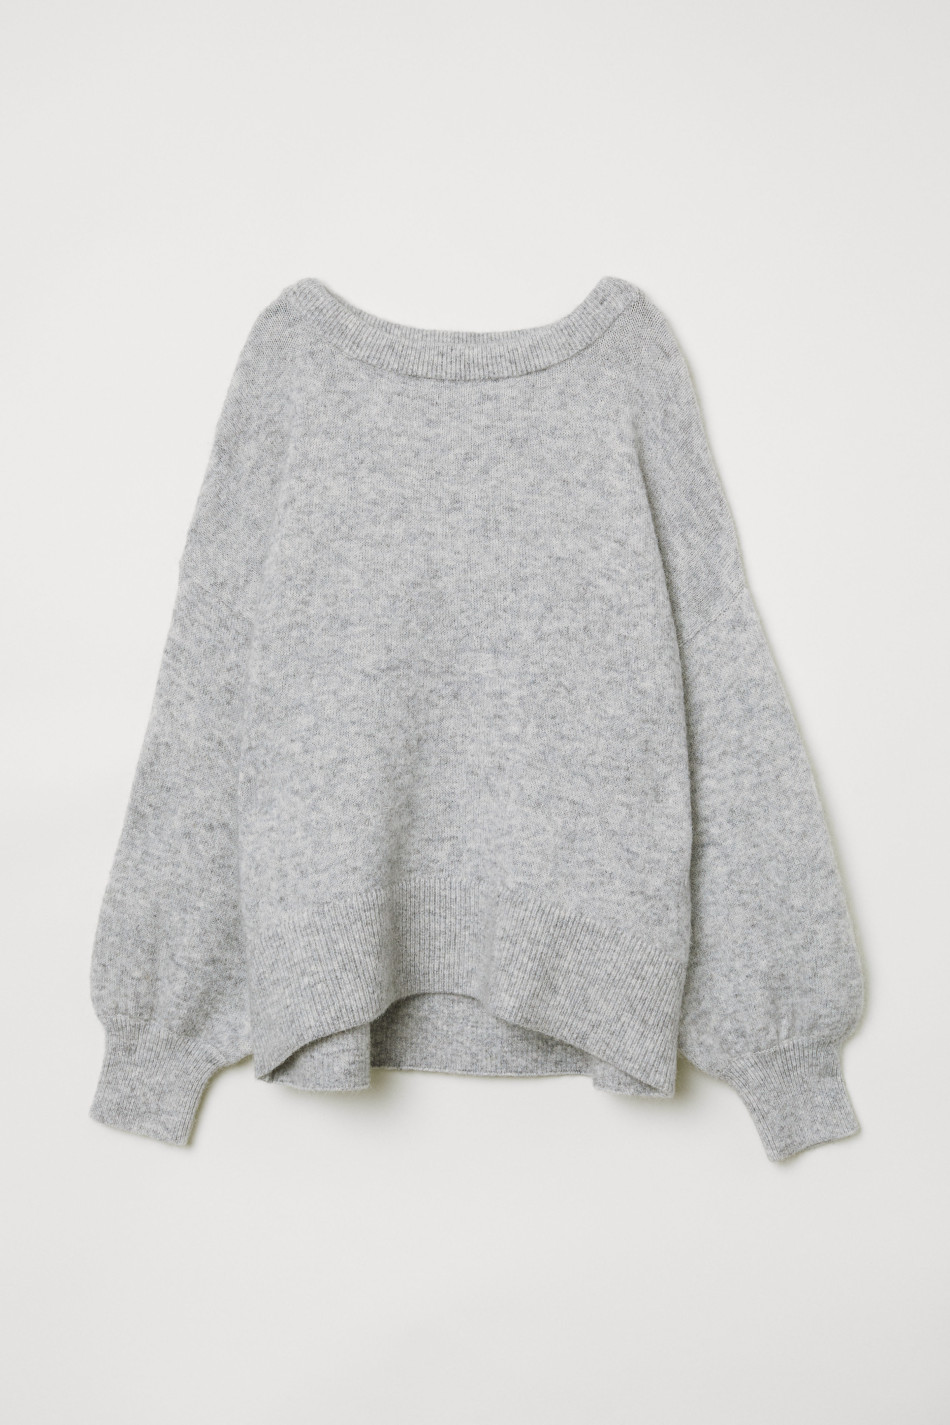 envelope_grey_knit_hm